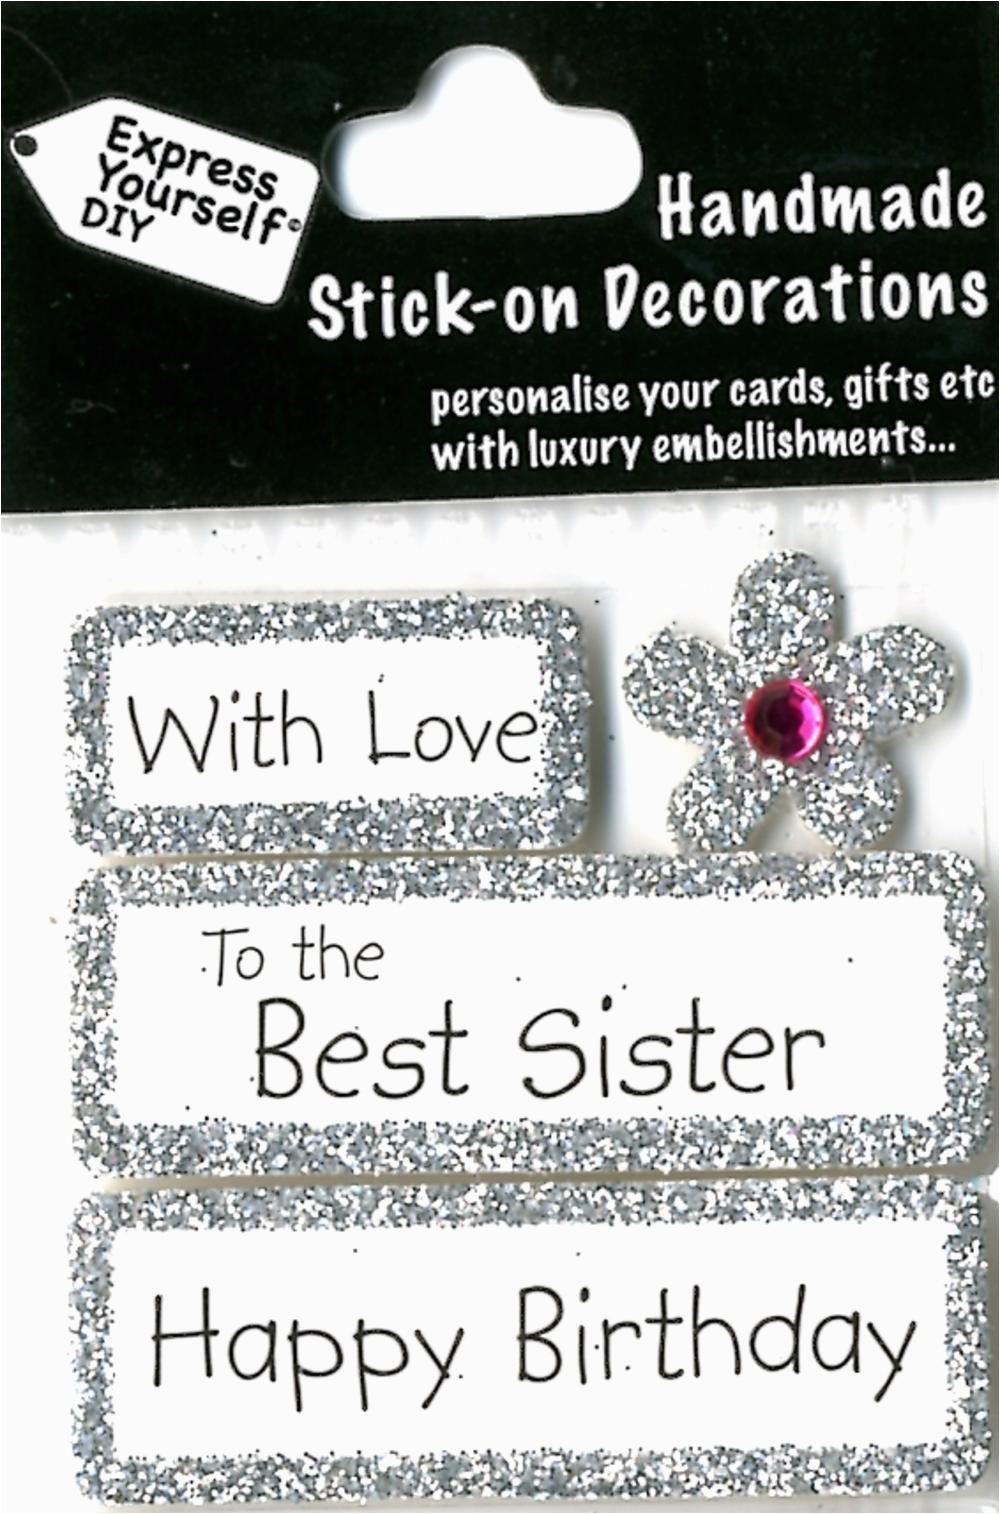 Diy Birthday Cards for Sister Happy Birthday Best Sister Diy Greeting Card toppers